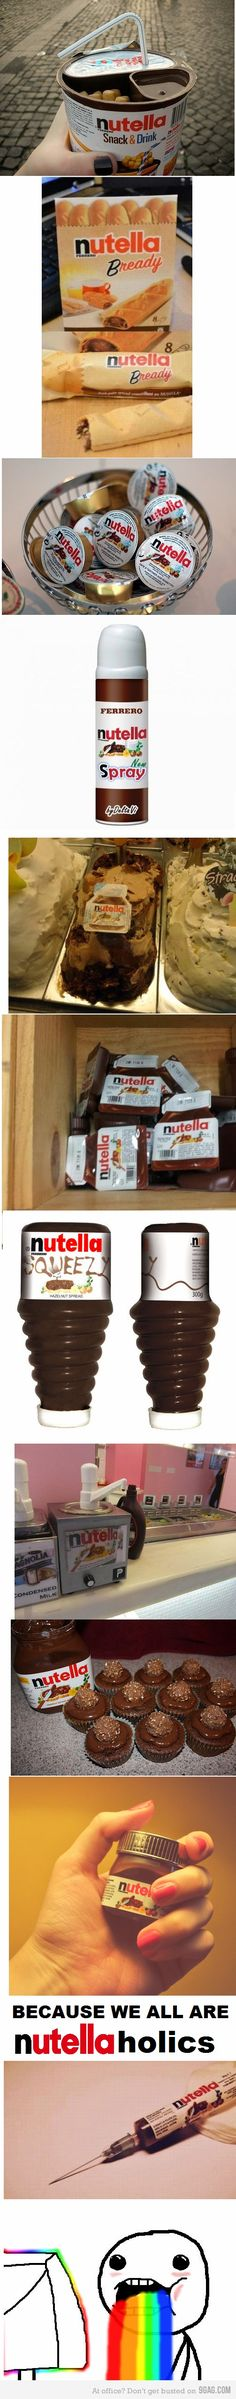 Because we're all Nutellaholics... PS. Why don't they sell any of this in the US!? D: